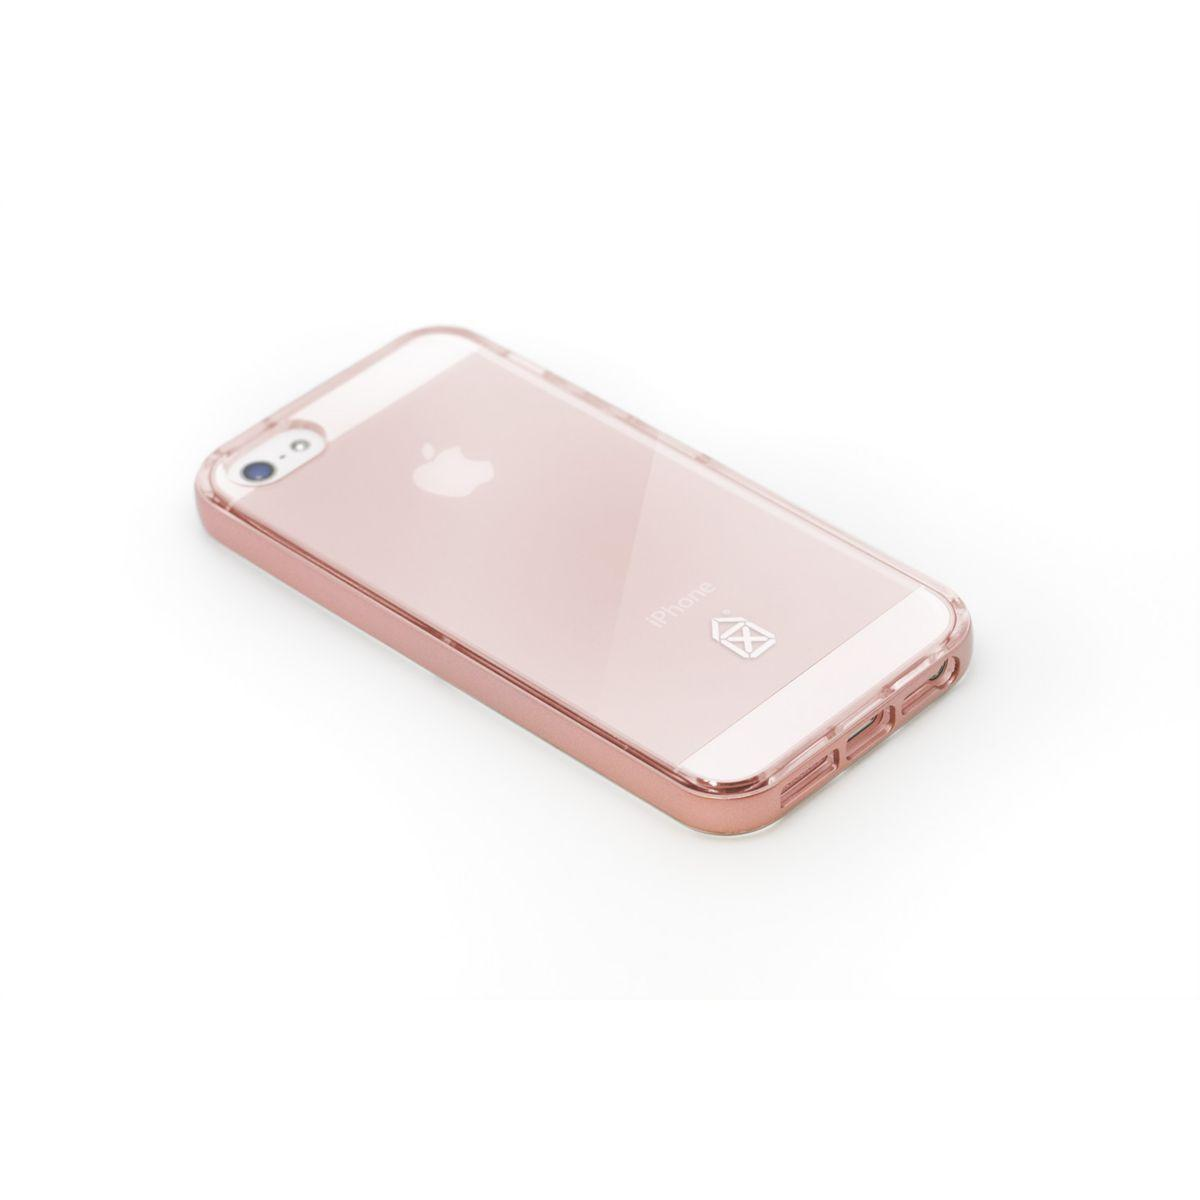 Bumper case scenario 3 en 1 rose gold 5s/se - 3% de remise immédiate avec le code : multi3 (photo)